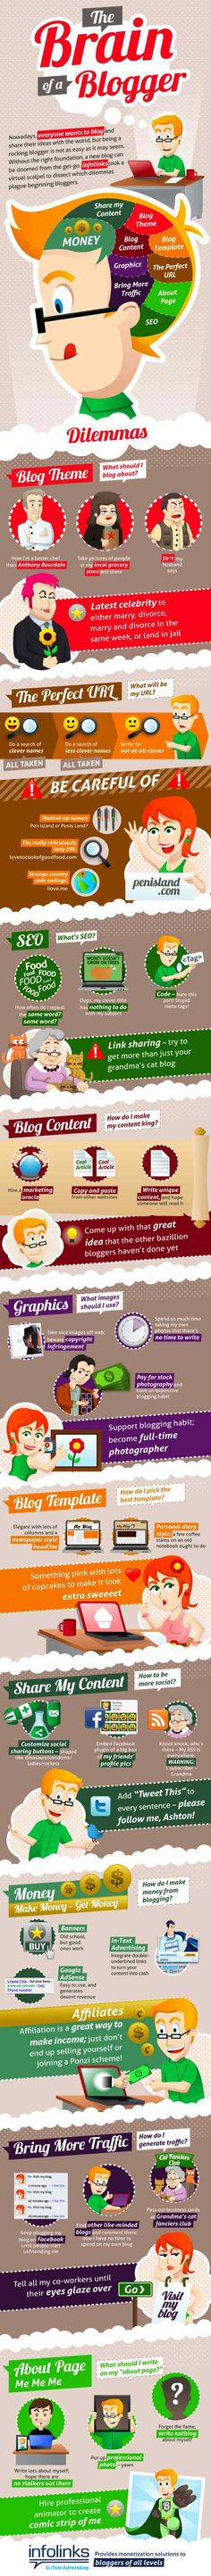 #Infographic: The Brain of the Beginning Blogger